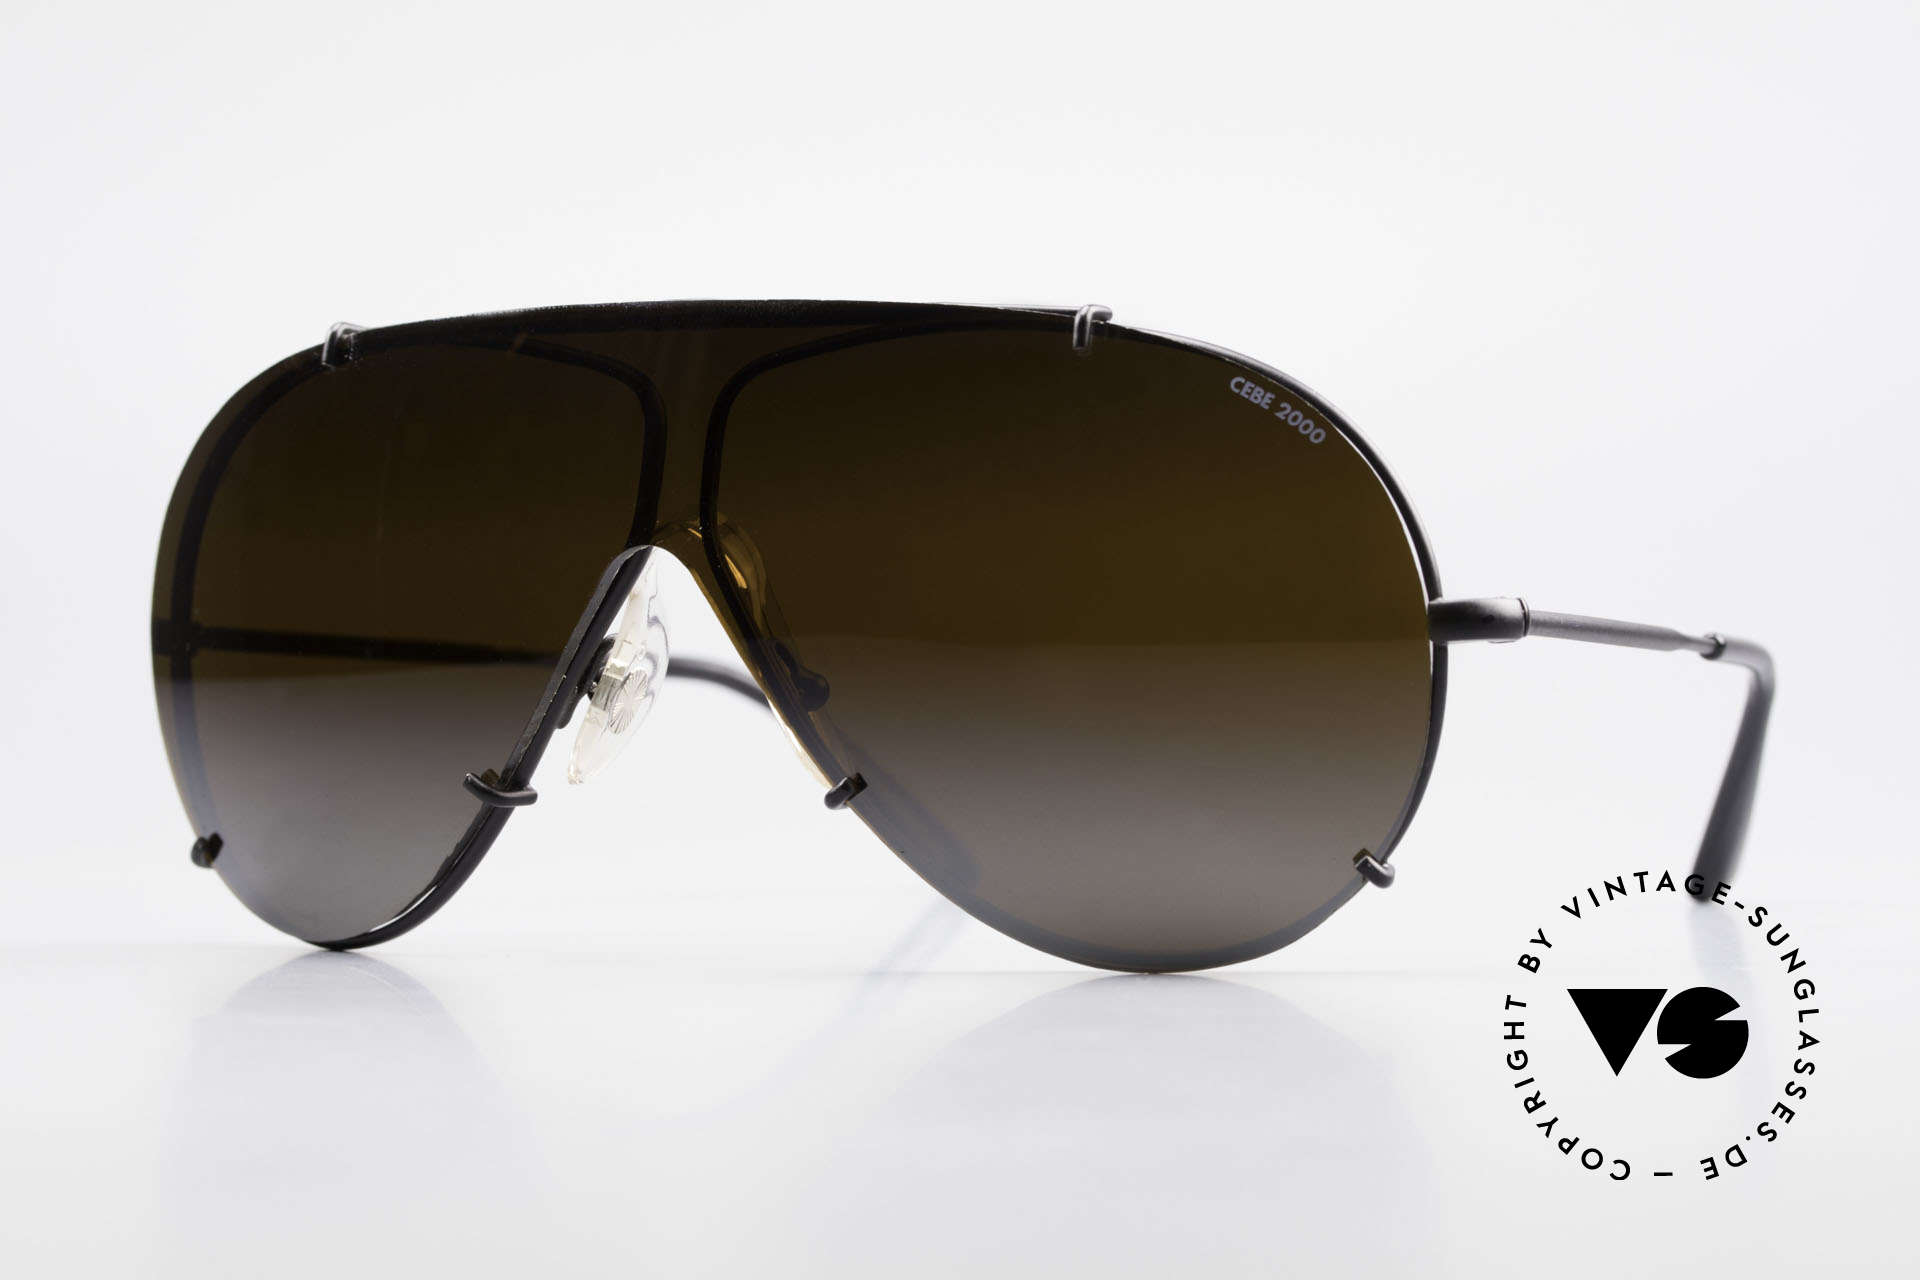 Cebe 2000 Rare Ral­lye Sports Sunglasses, vintage CEBE sports shades - made for extreme purpose, Made for Men